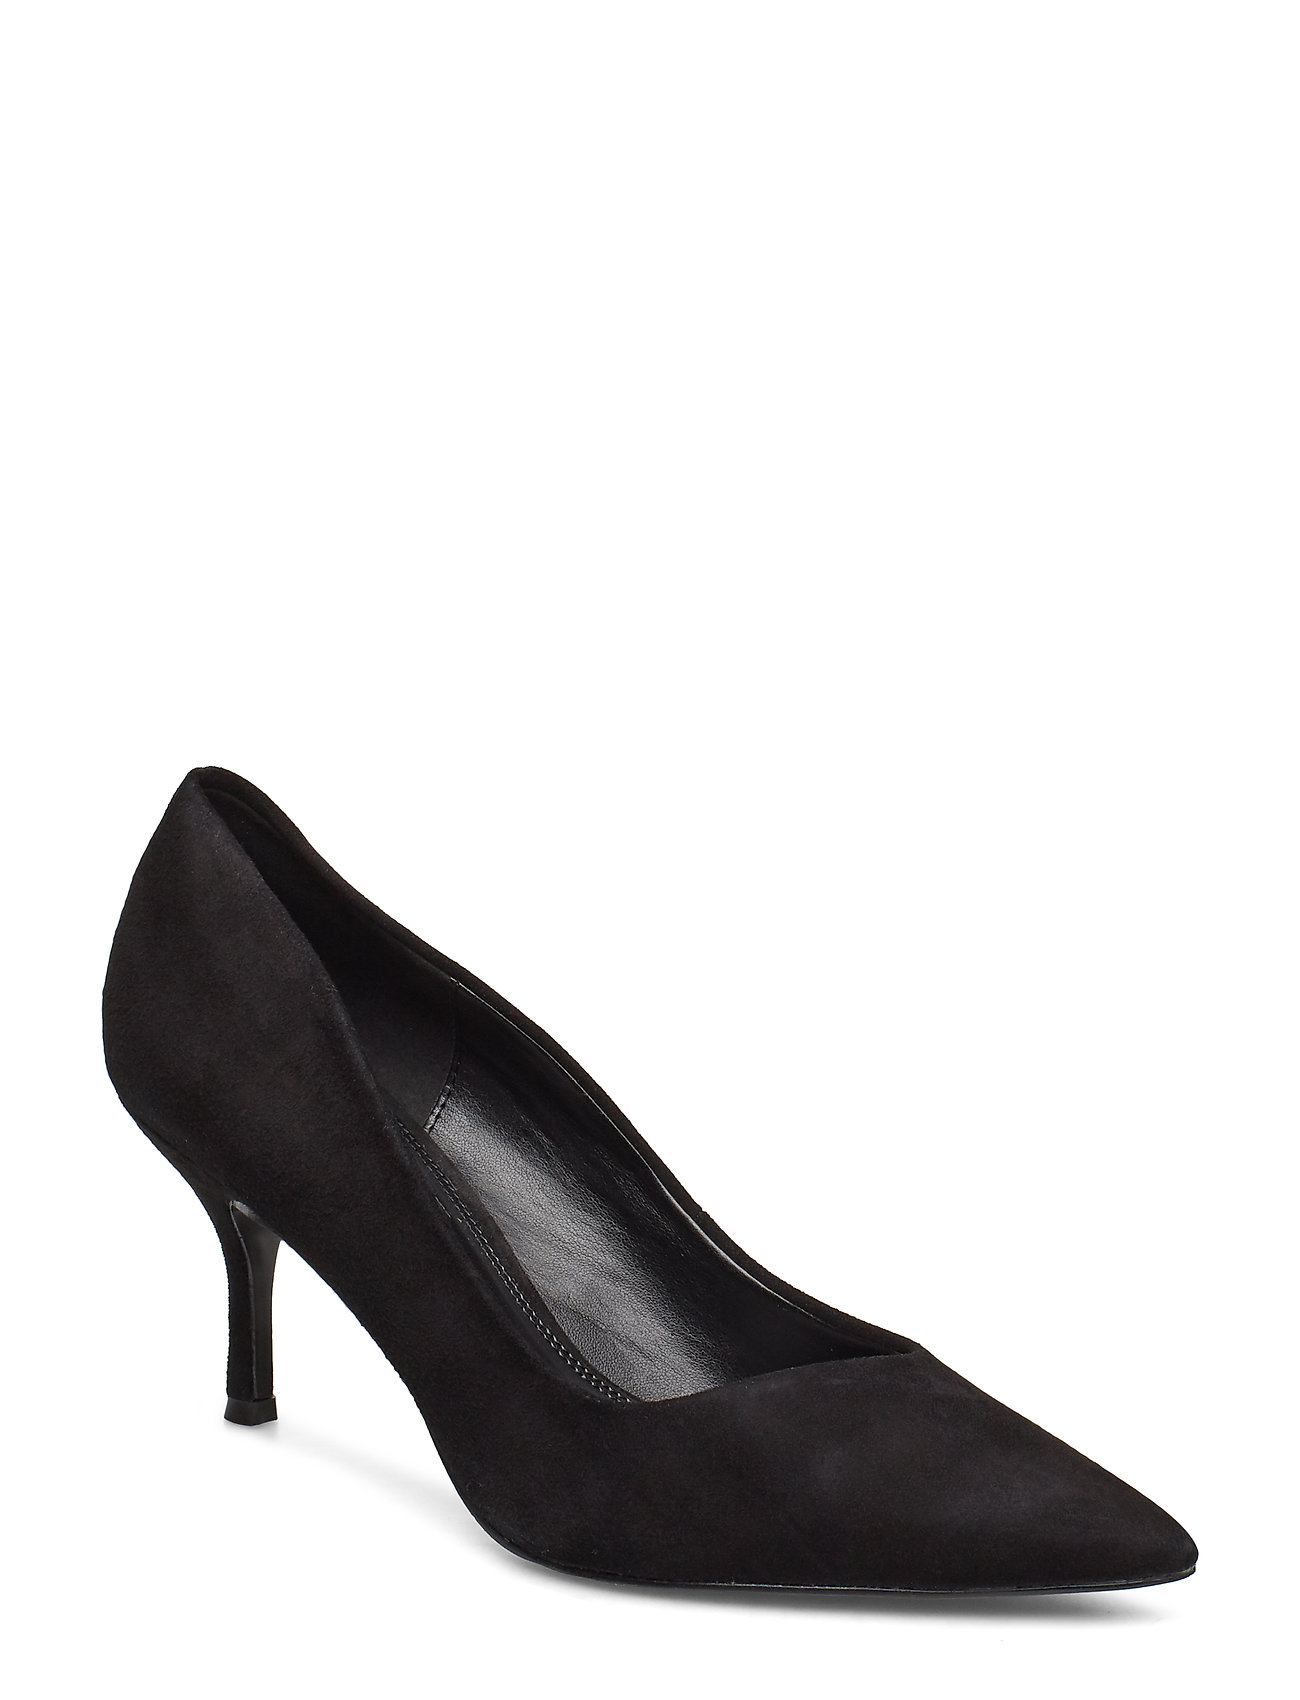 Dune London ANDES - BLACK-SUEDE